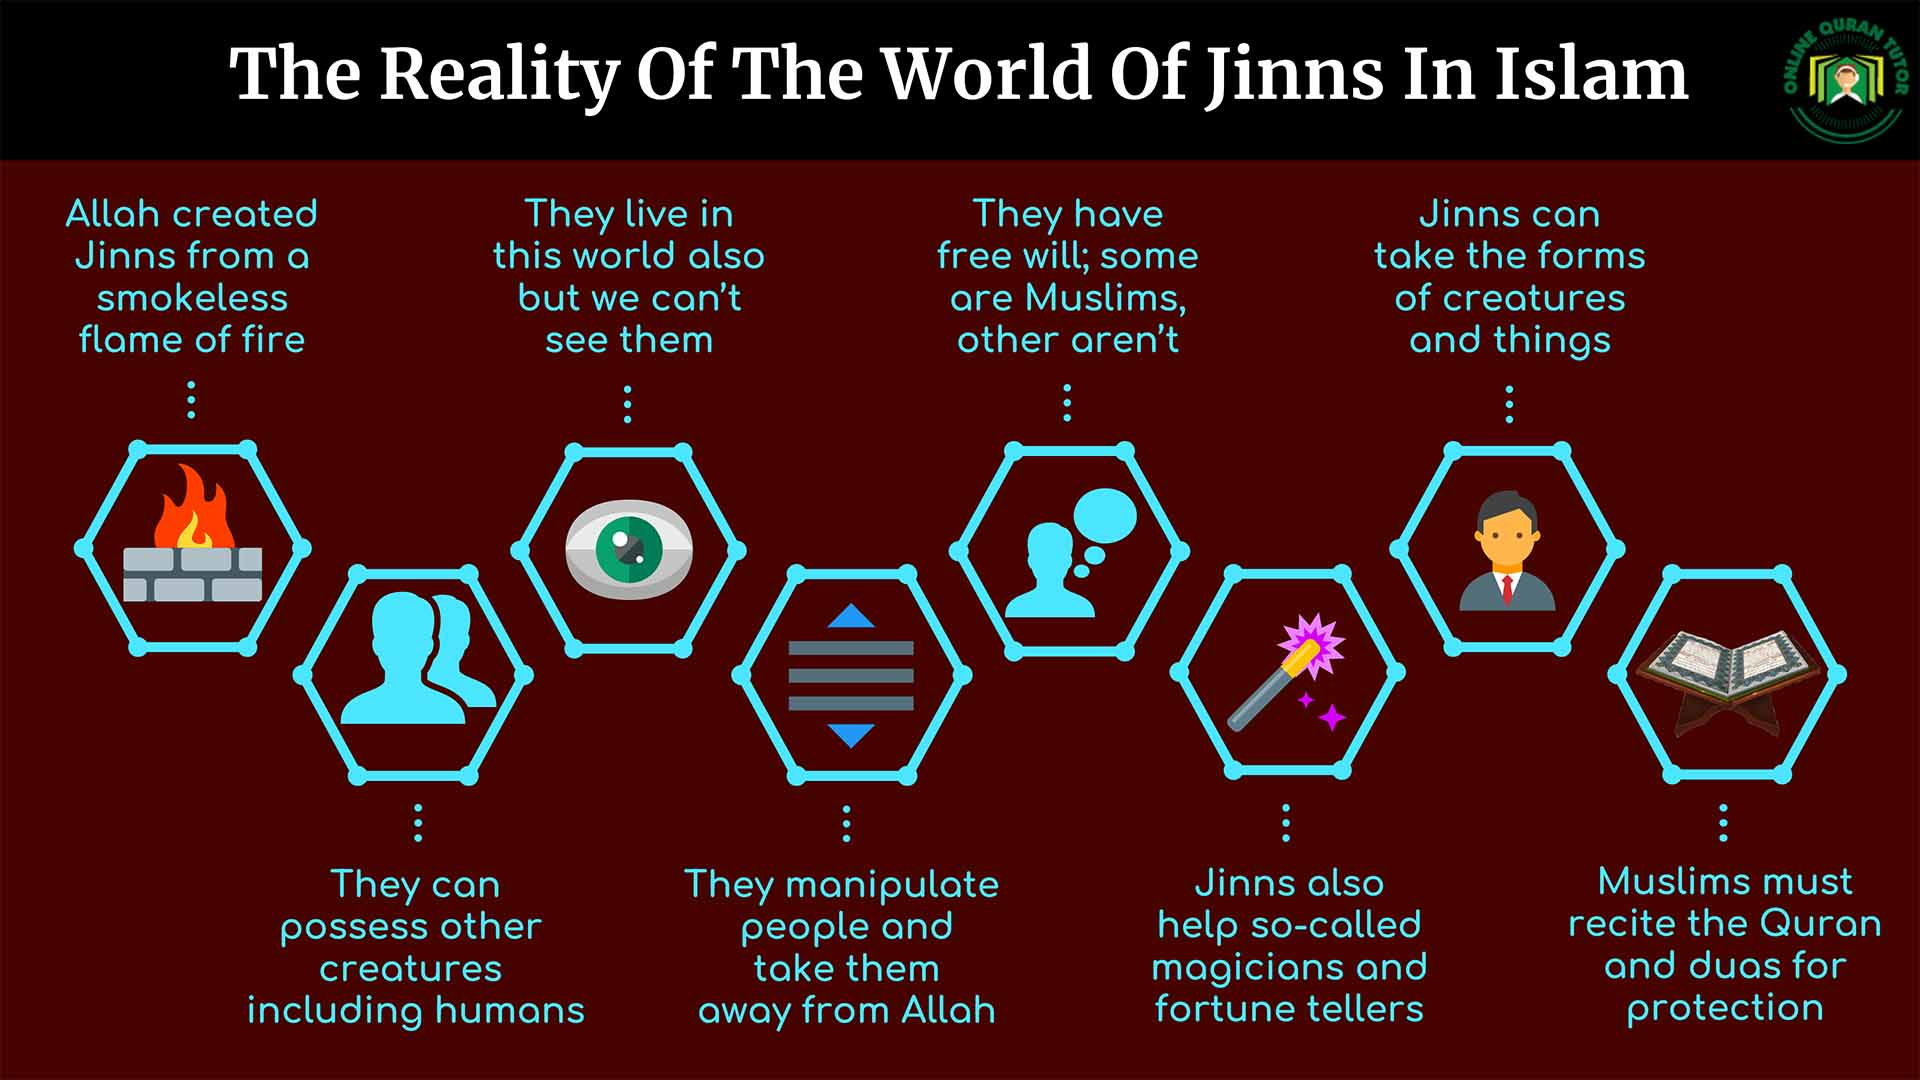 The Reality Of The World Of Jinns In Islam